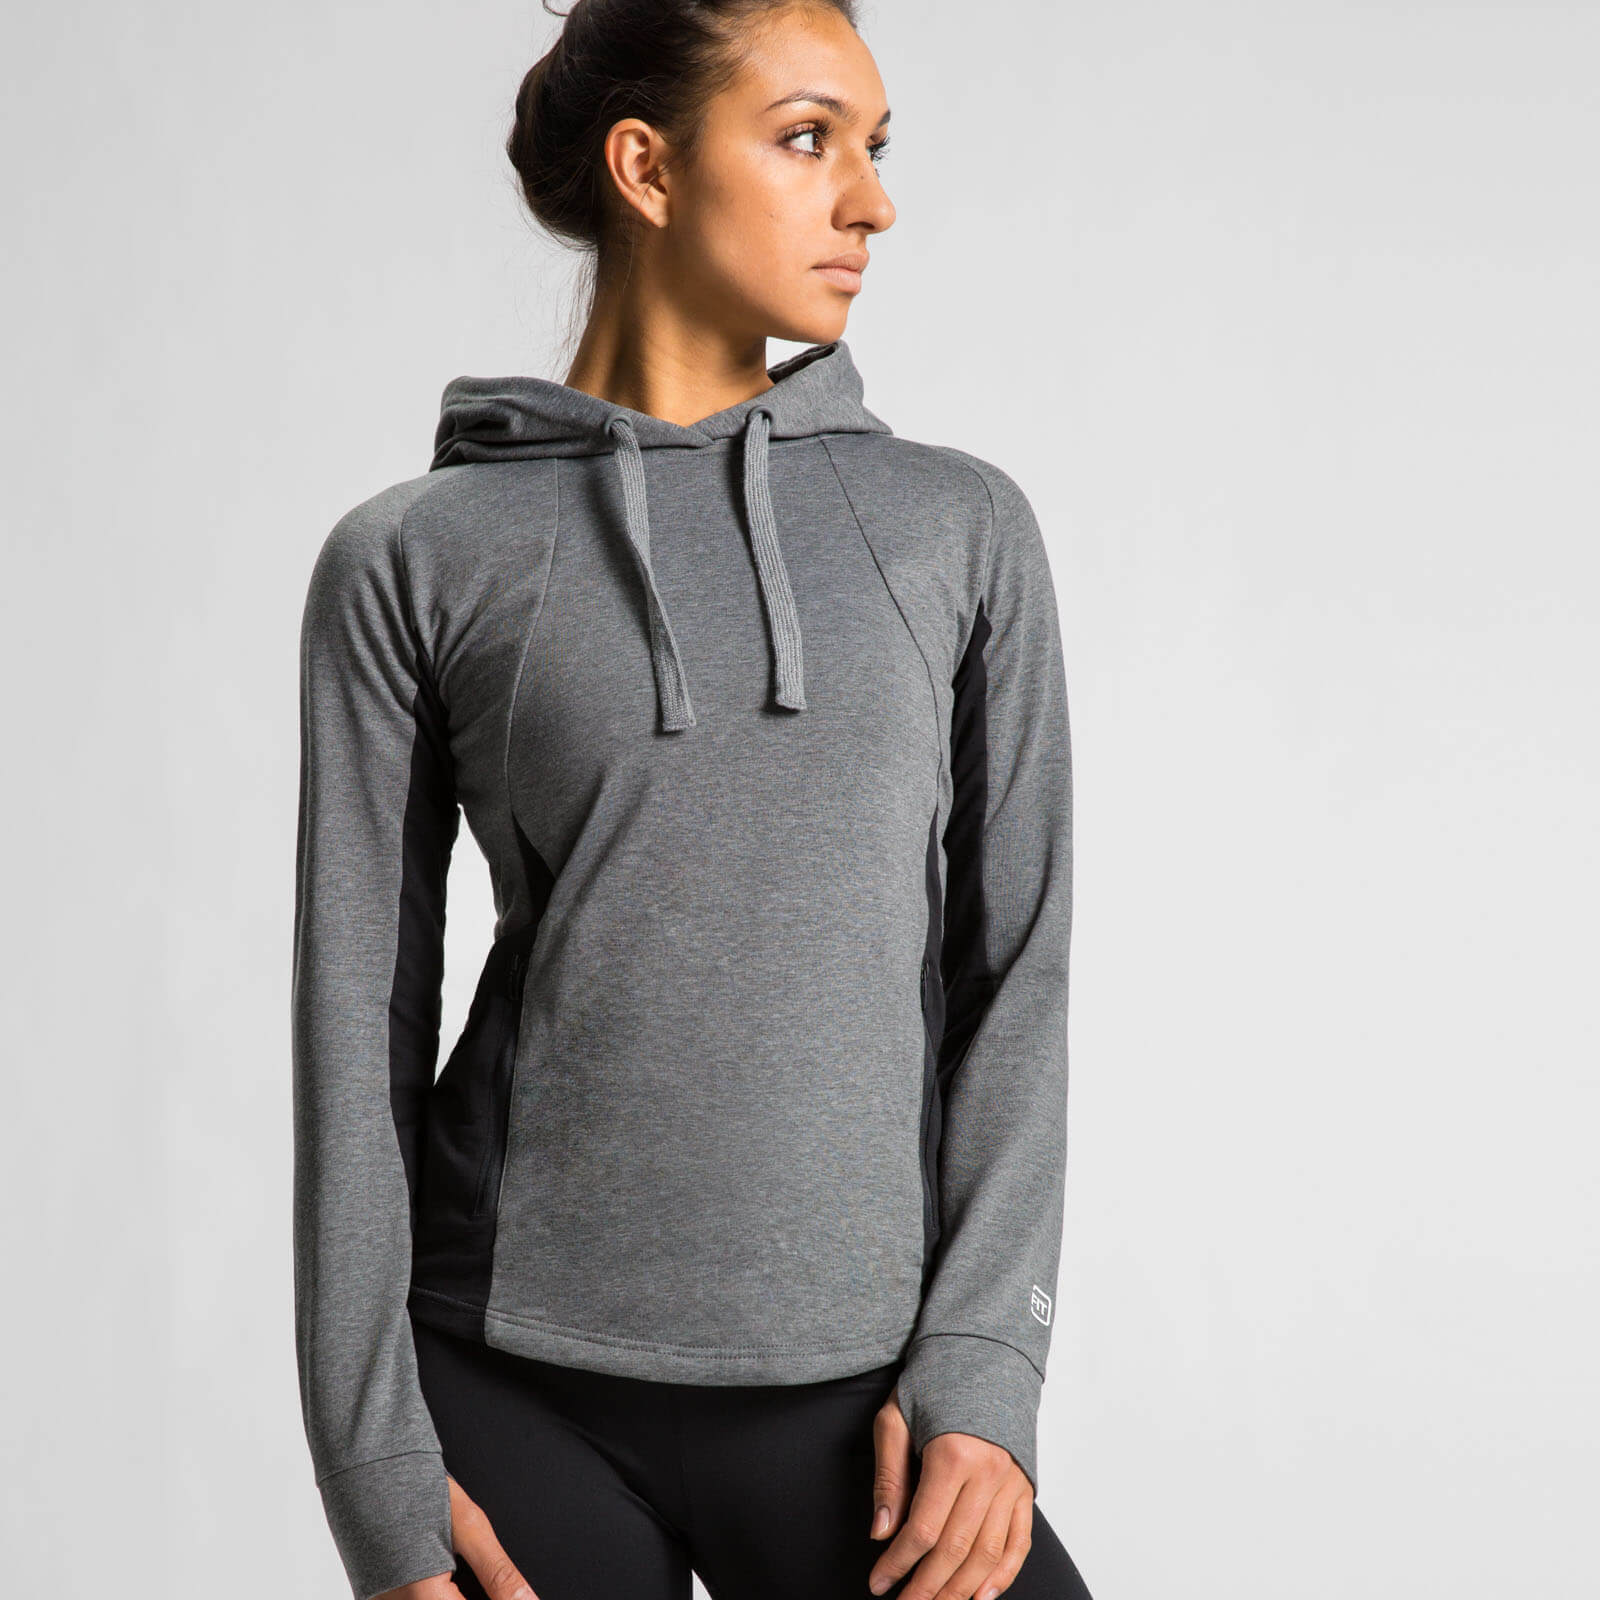 M - Superlite Pullover Hoody - Charcoal